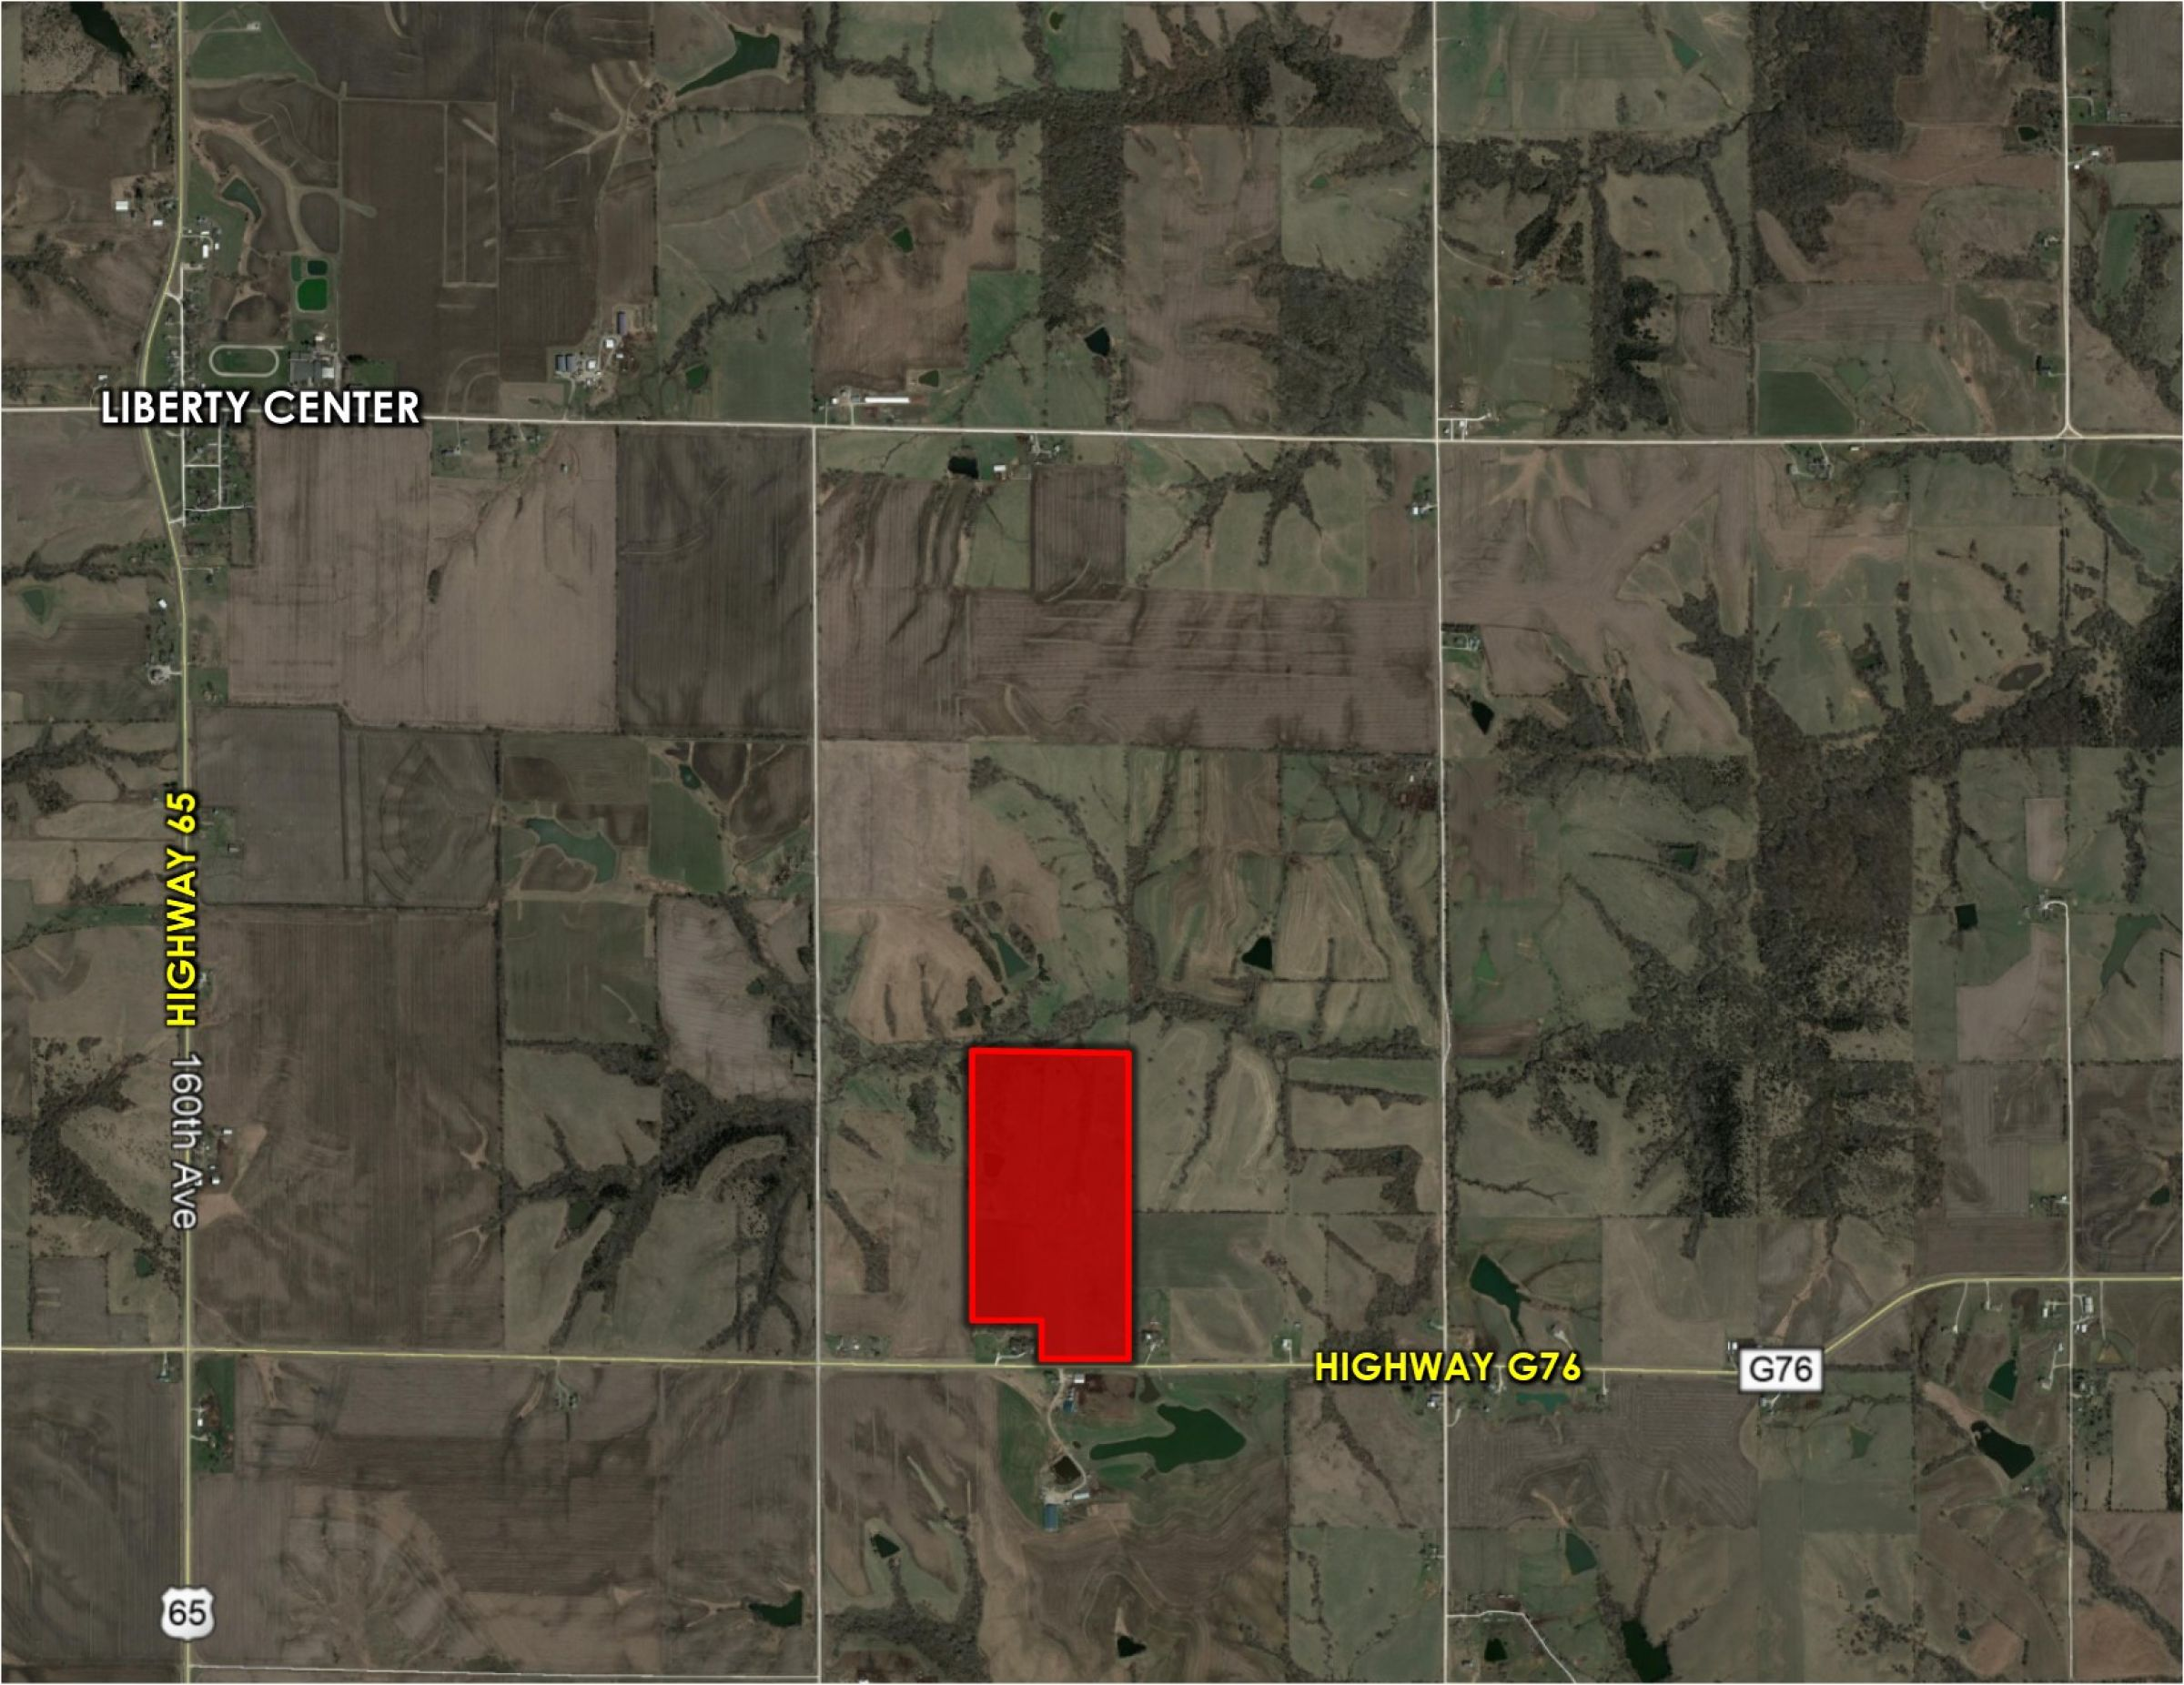 Peoples Company Land for Sale-14404-17285-g76-highway-lacona-50139-12-2019-08-01-203808.jpg